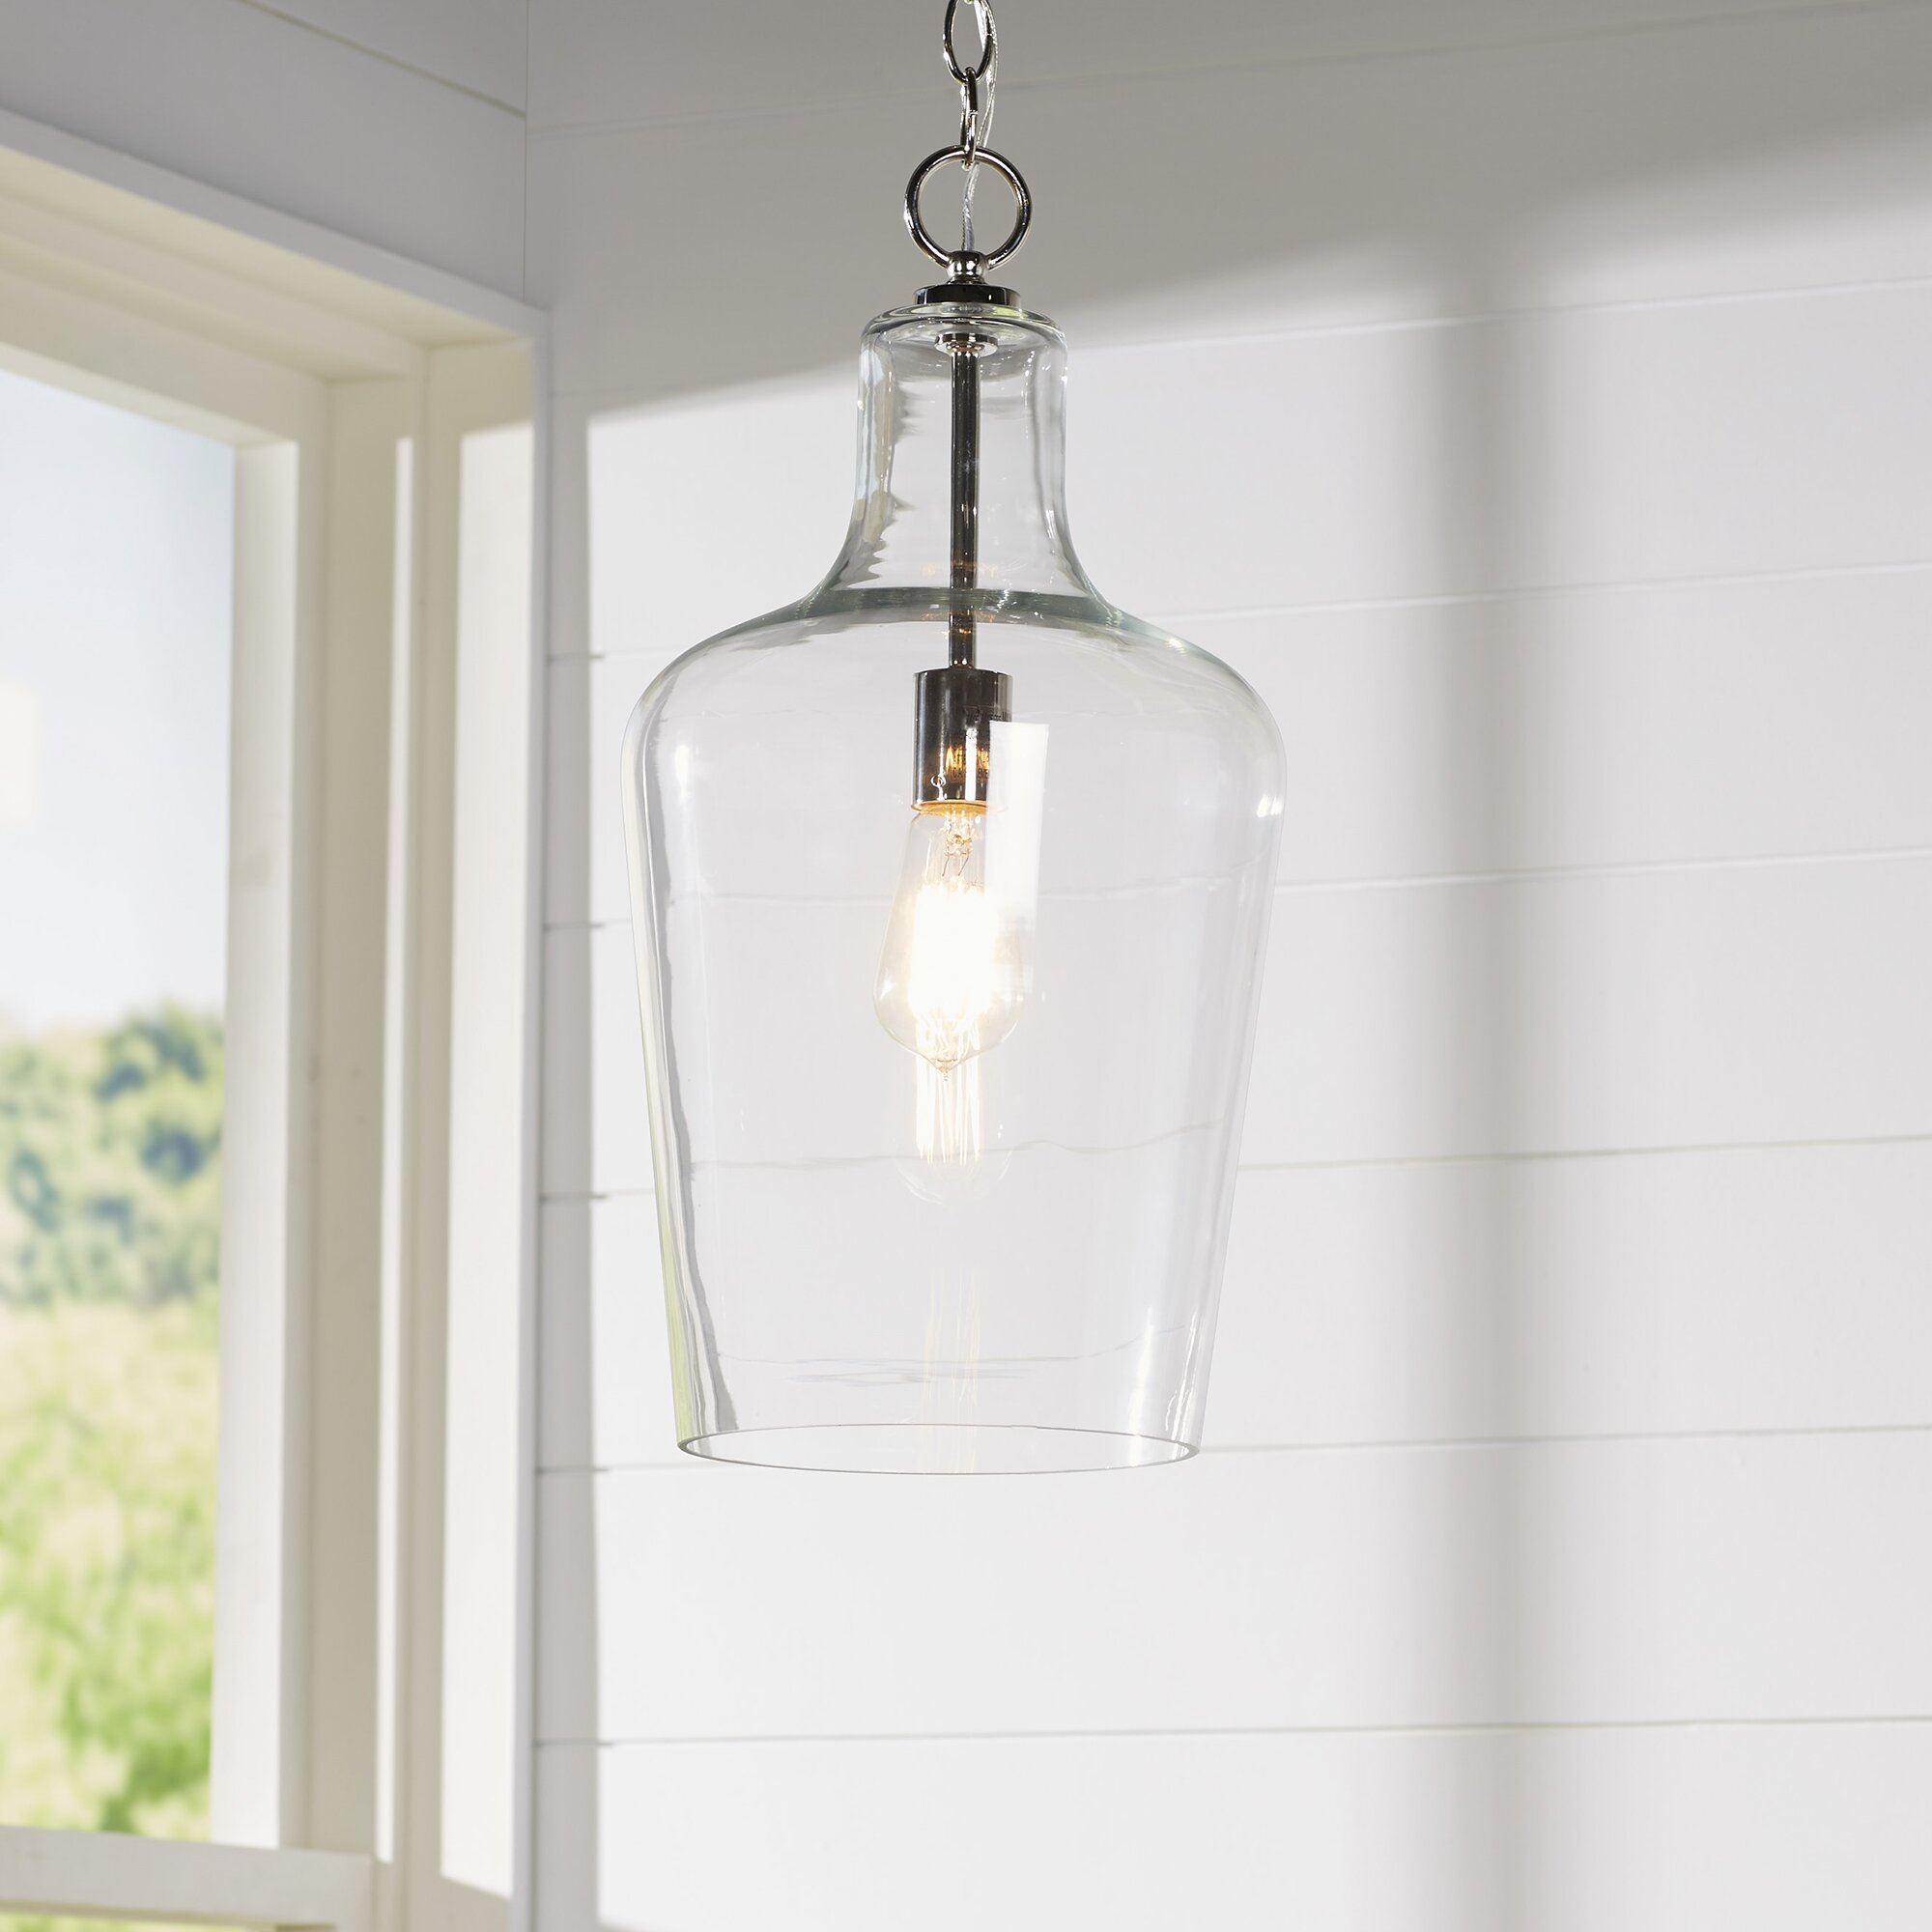 Hanging Lights For Bedroom Laurel Foundry Modern Farmhouse Carey 1 Light Foyer